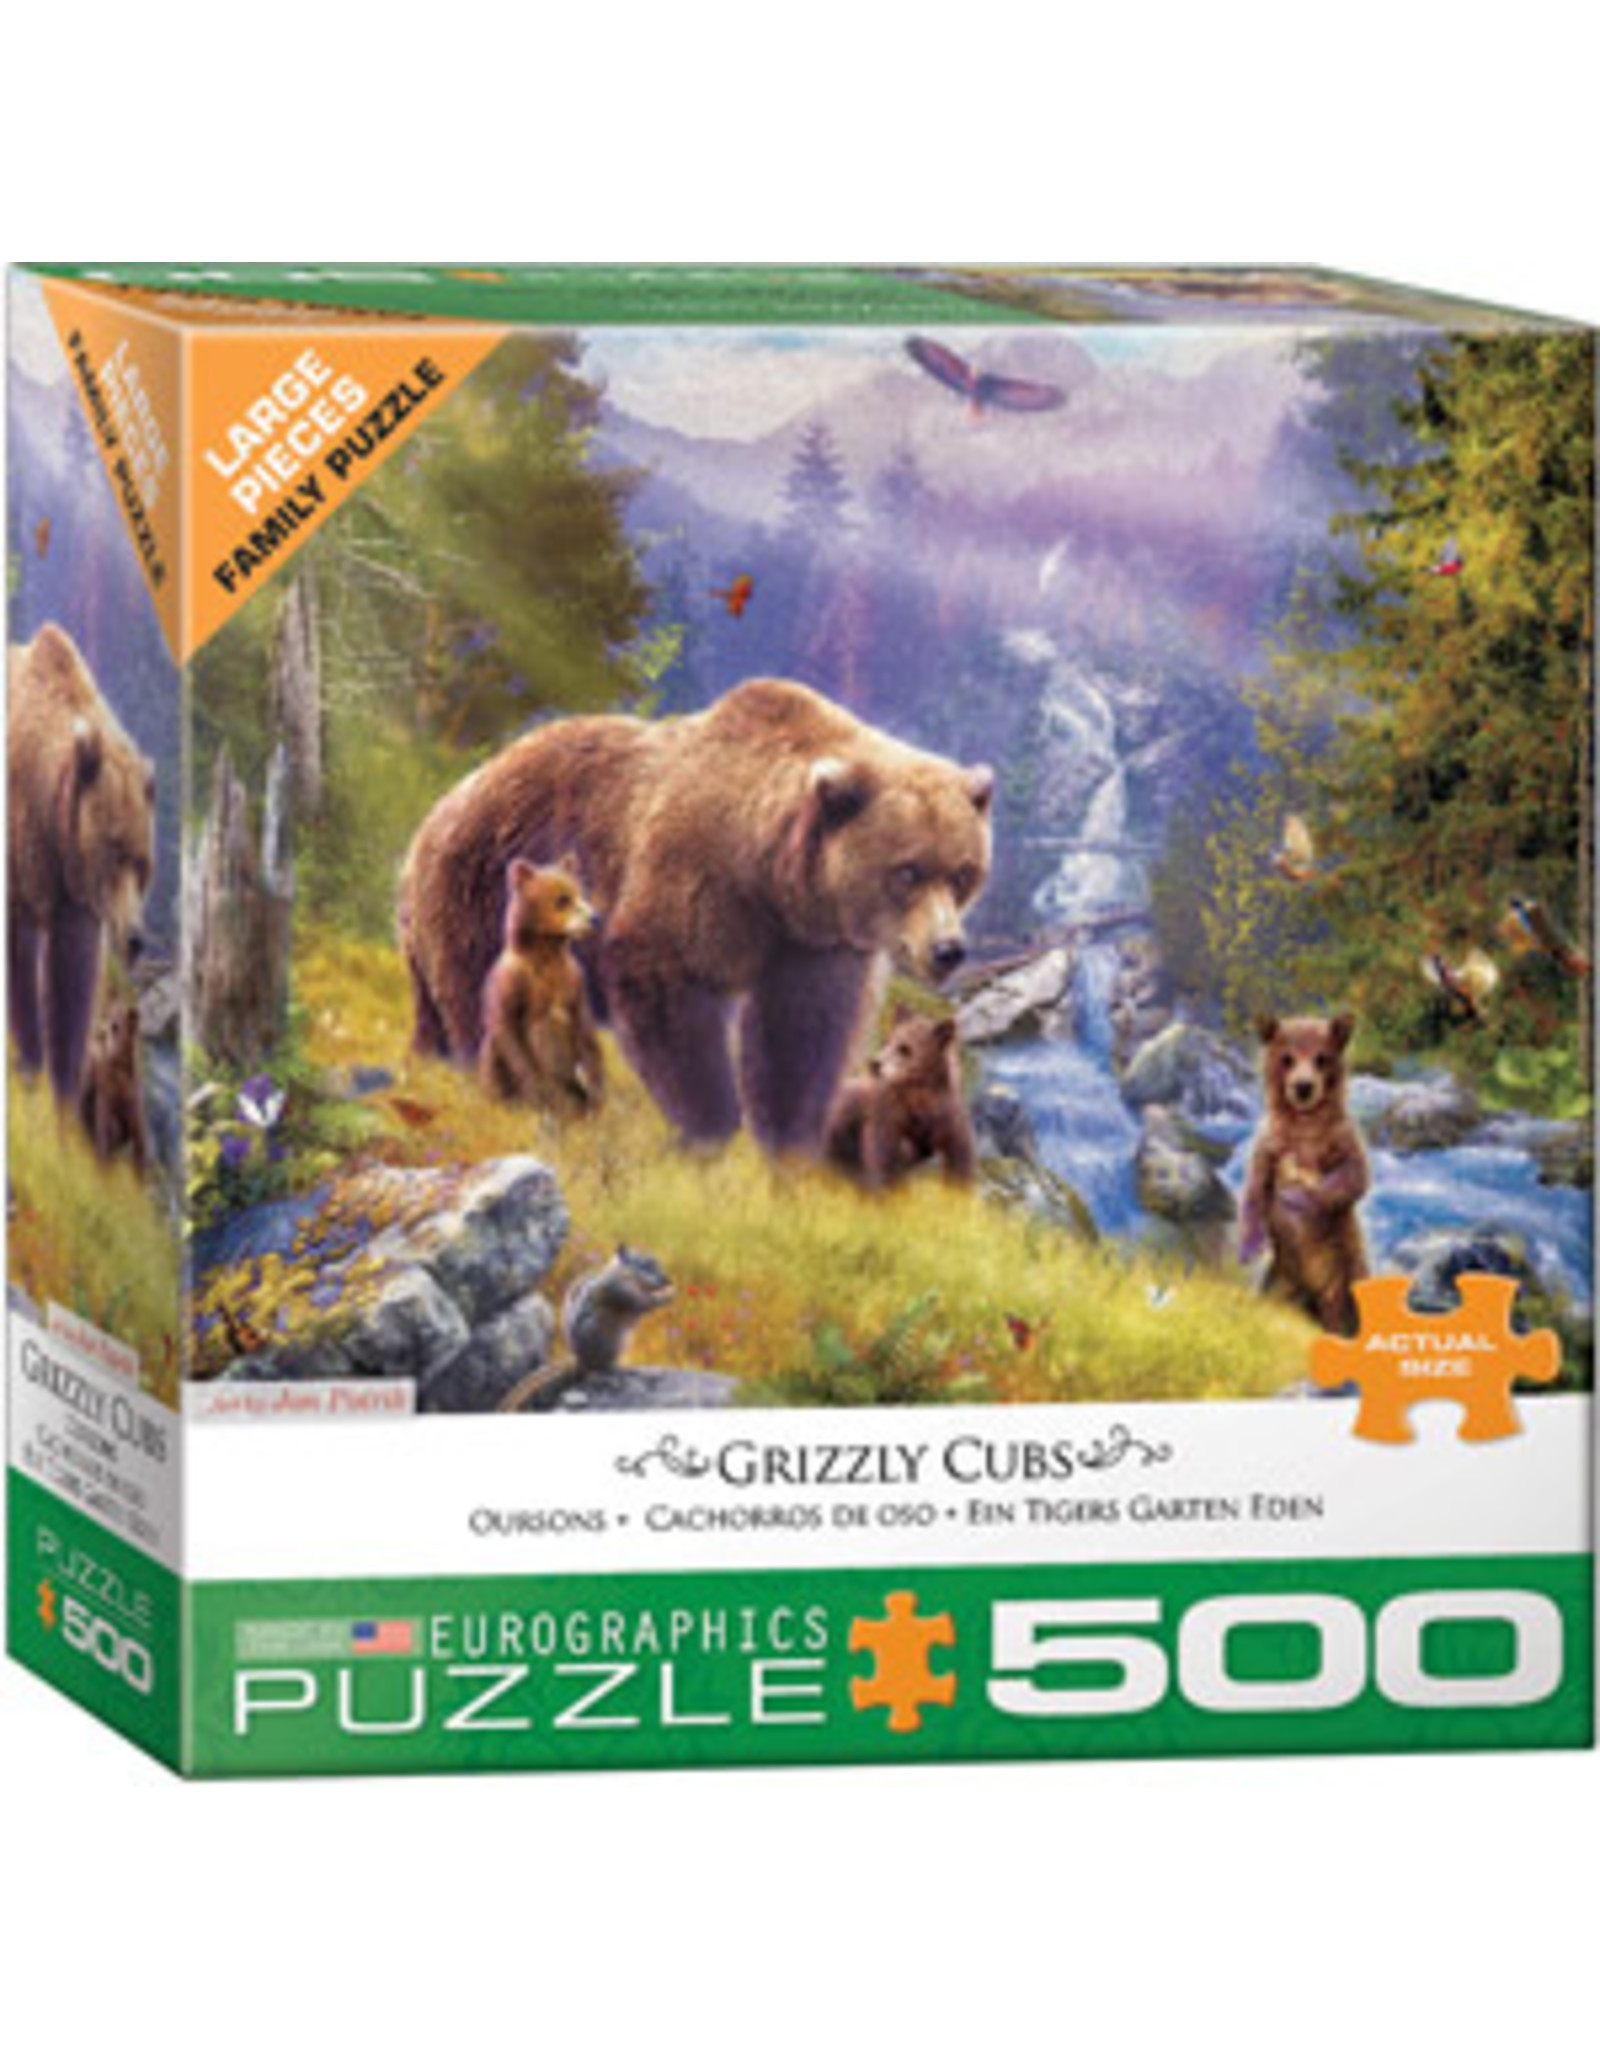 Eurographics Grizzly Cubs